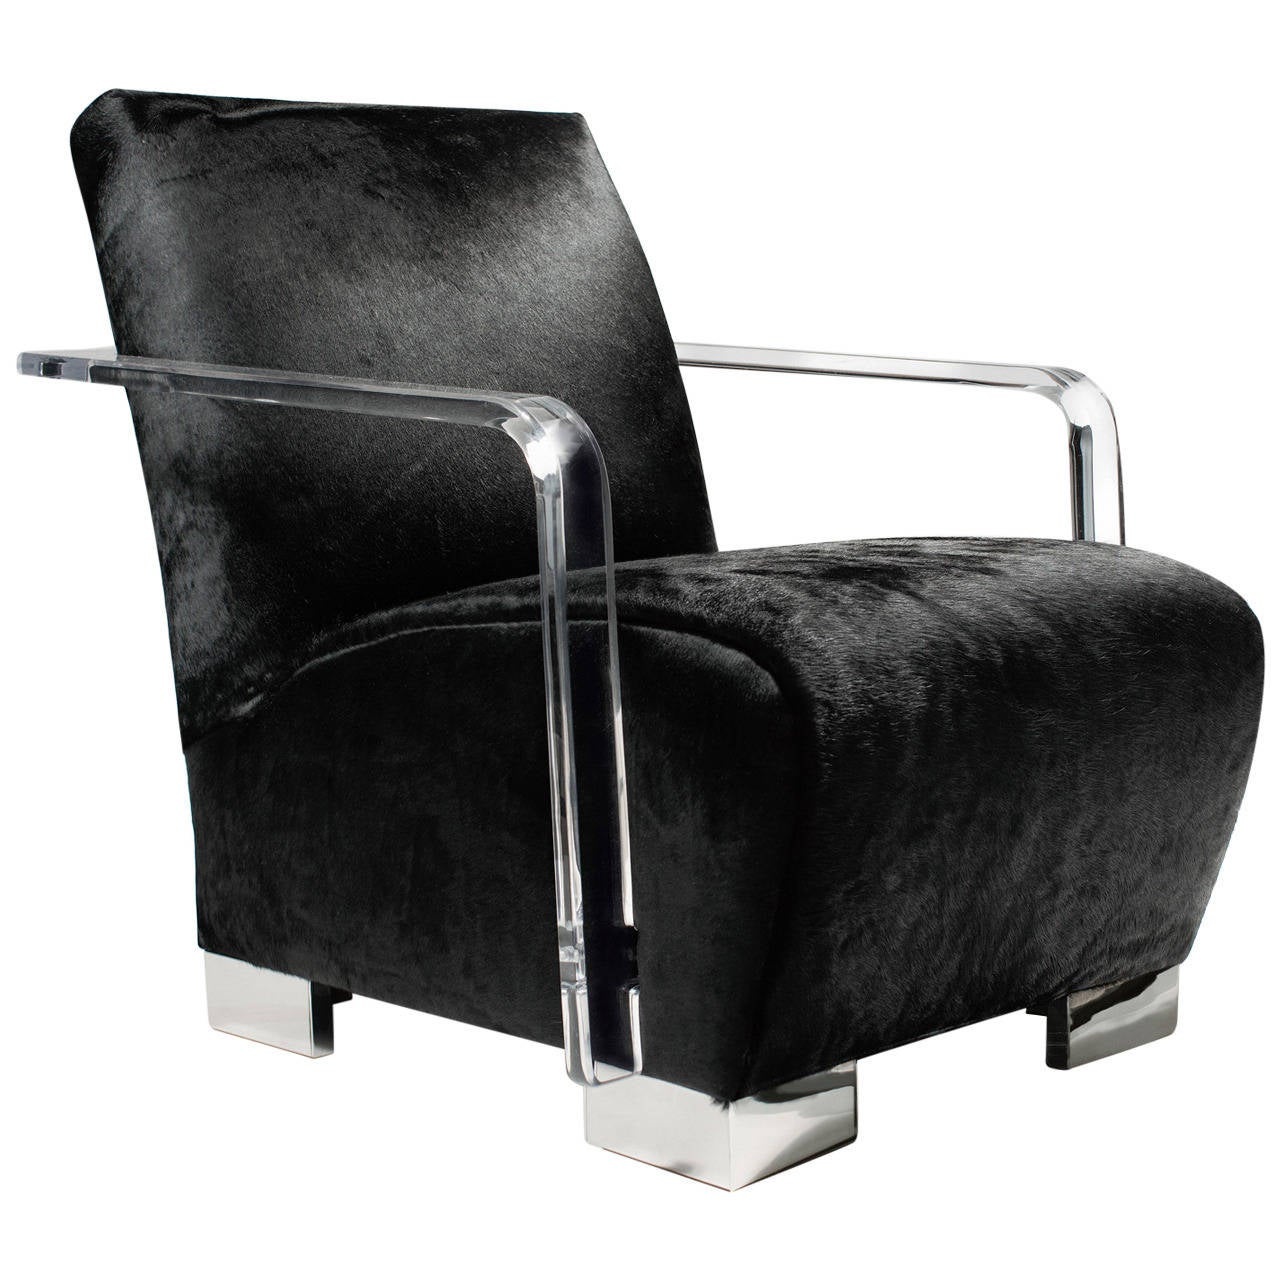 Cowhide Egg Chair Solid Black Cowhide Helena Chair With Acrylic Armrests At